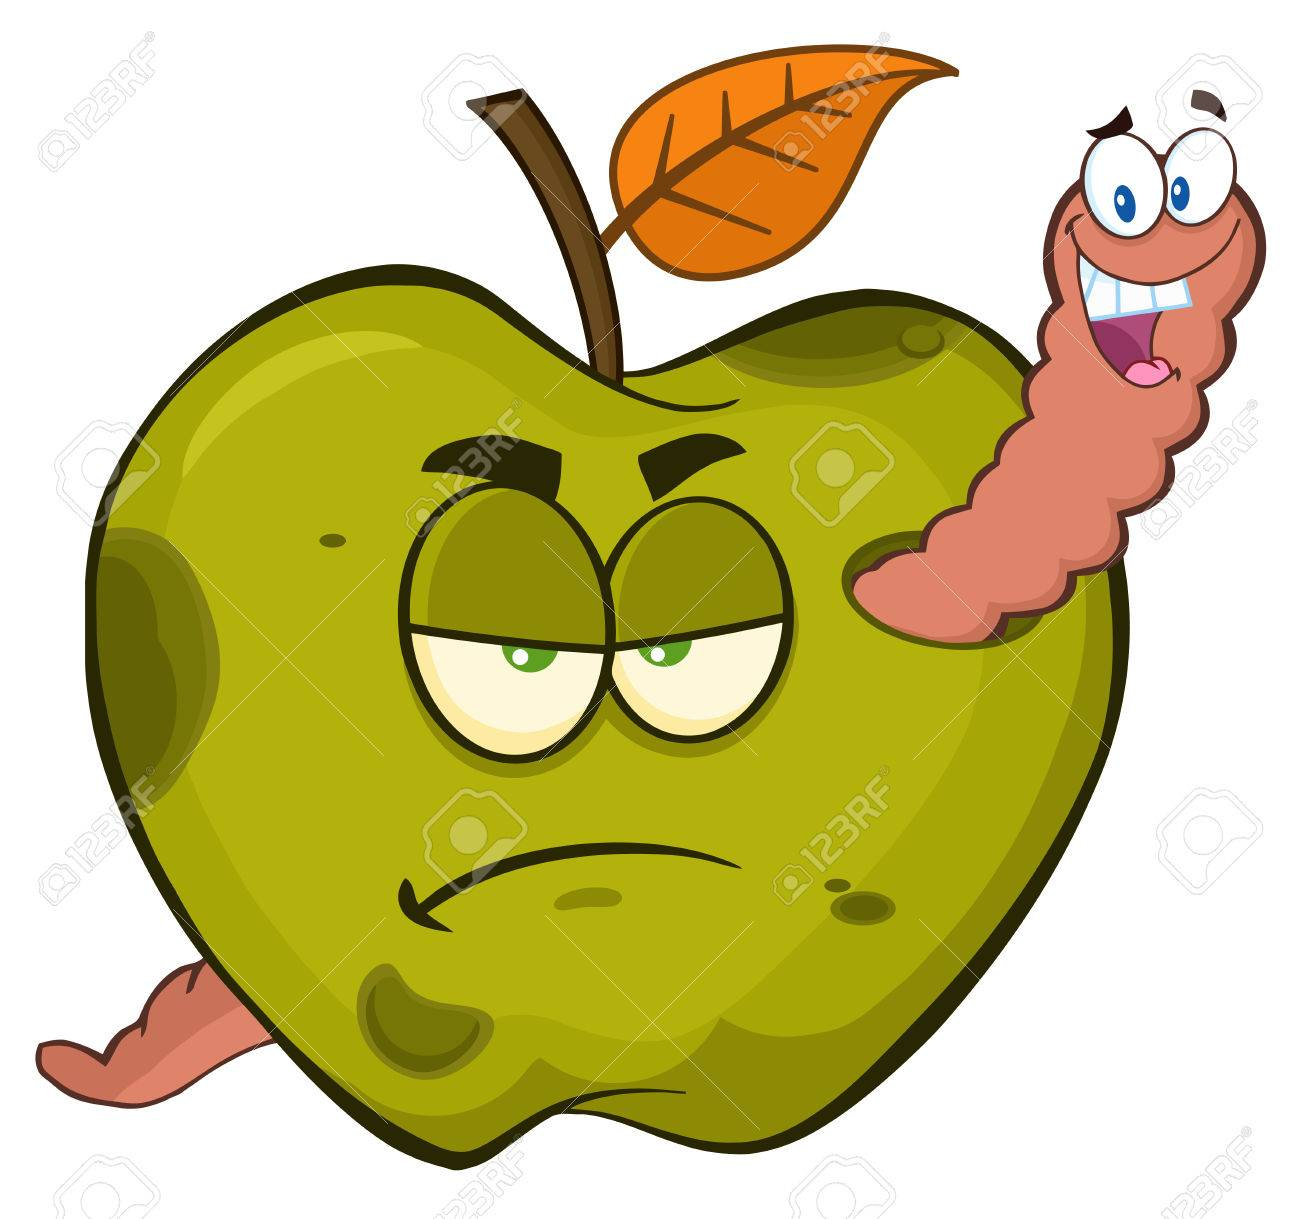 Rotting Apple Clipart.